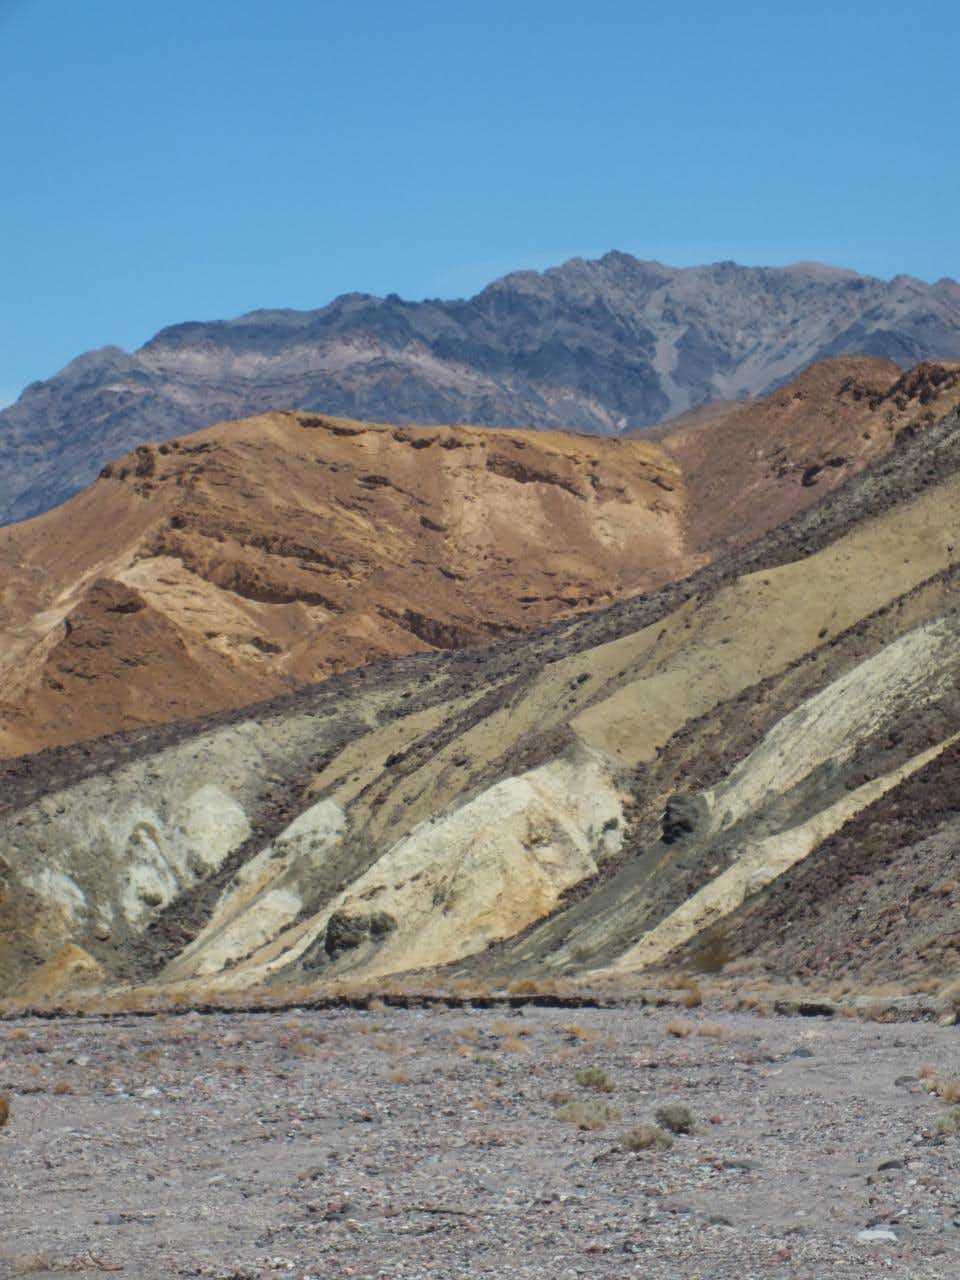 You think it's hot? Death Valley soars past 120 degrees